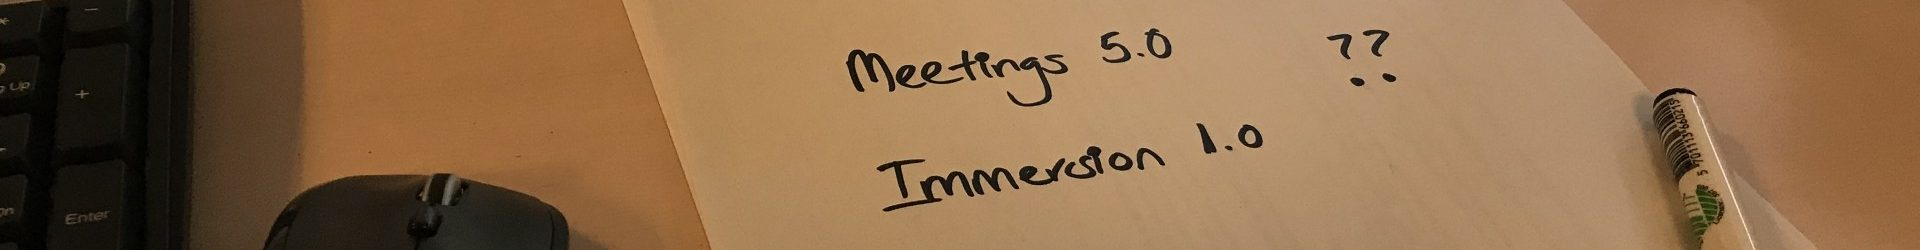 Meetings 5.0…or Immersion 1.0?